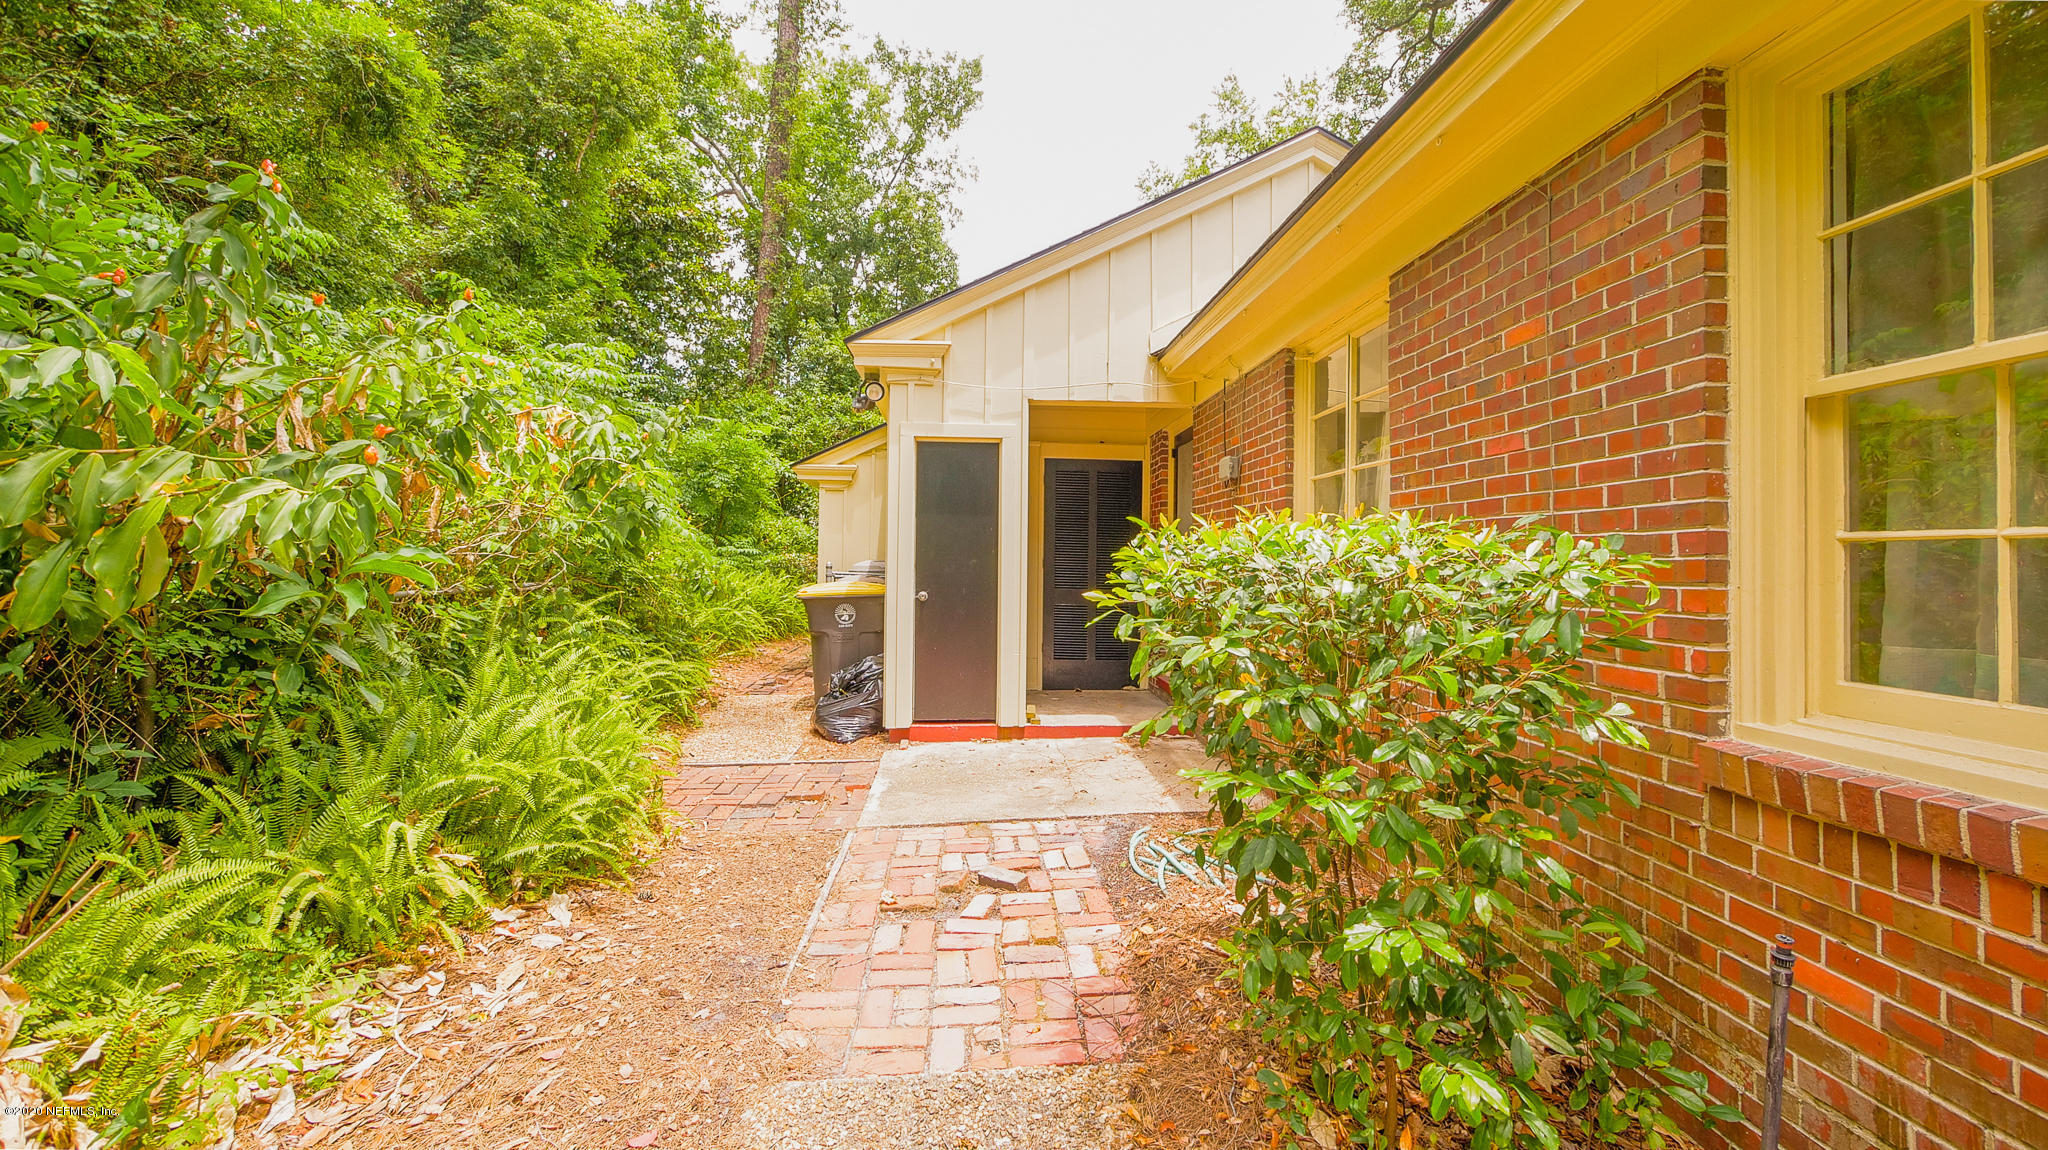 4728 IROQUOIS, JACKSONVILLE, FLORIDA 32210, 3 Bedrooms Bedrooms, ,2 BathroomsBathrooms,Residential,For sale,IROQUOIS,1054696